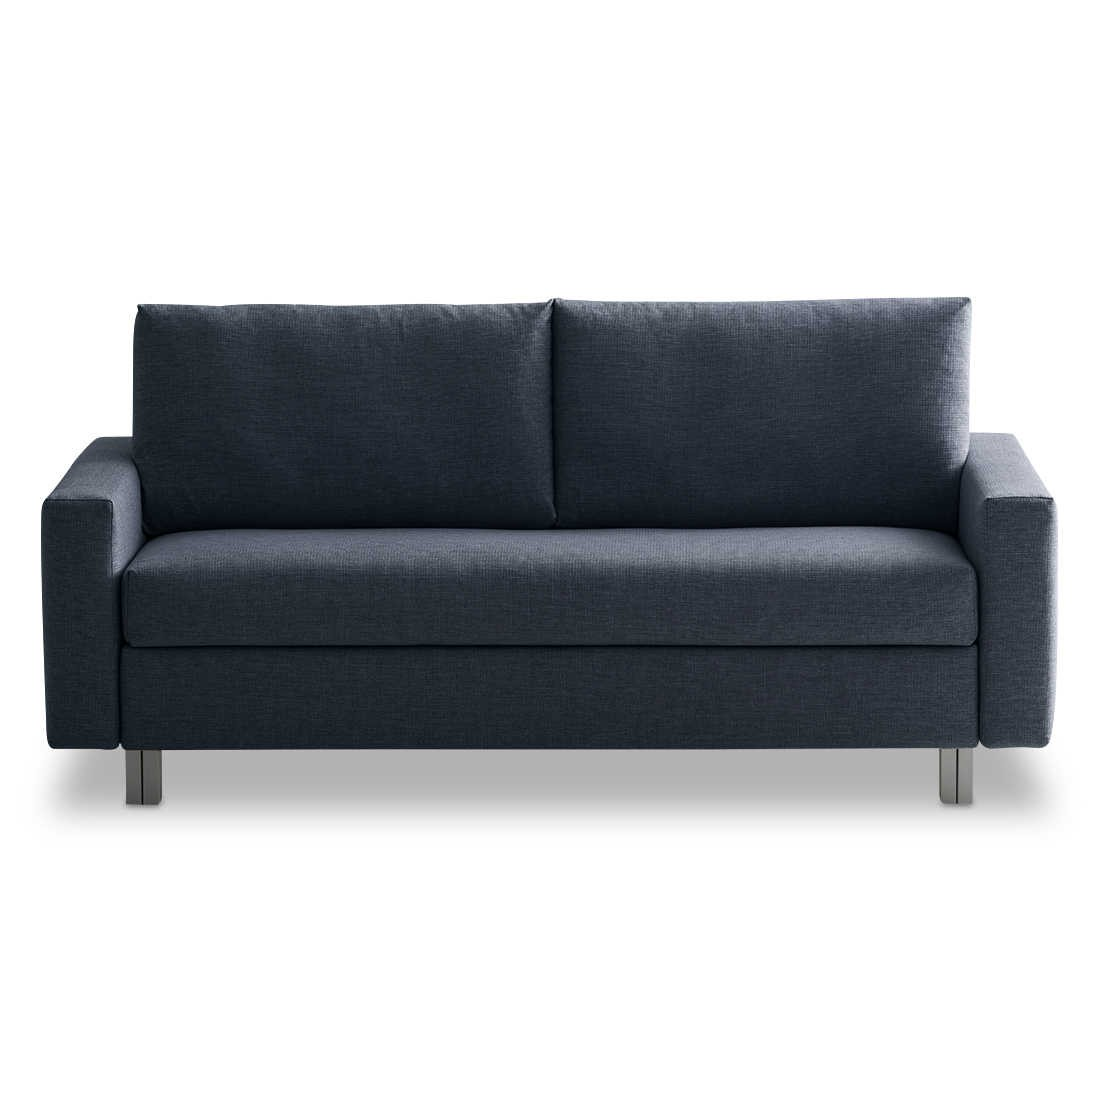 franz fertig schlafsofa maxita blau stoff online kaufen bei woonio. Black Bedroom Furniture Sets. Home Design Ideas